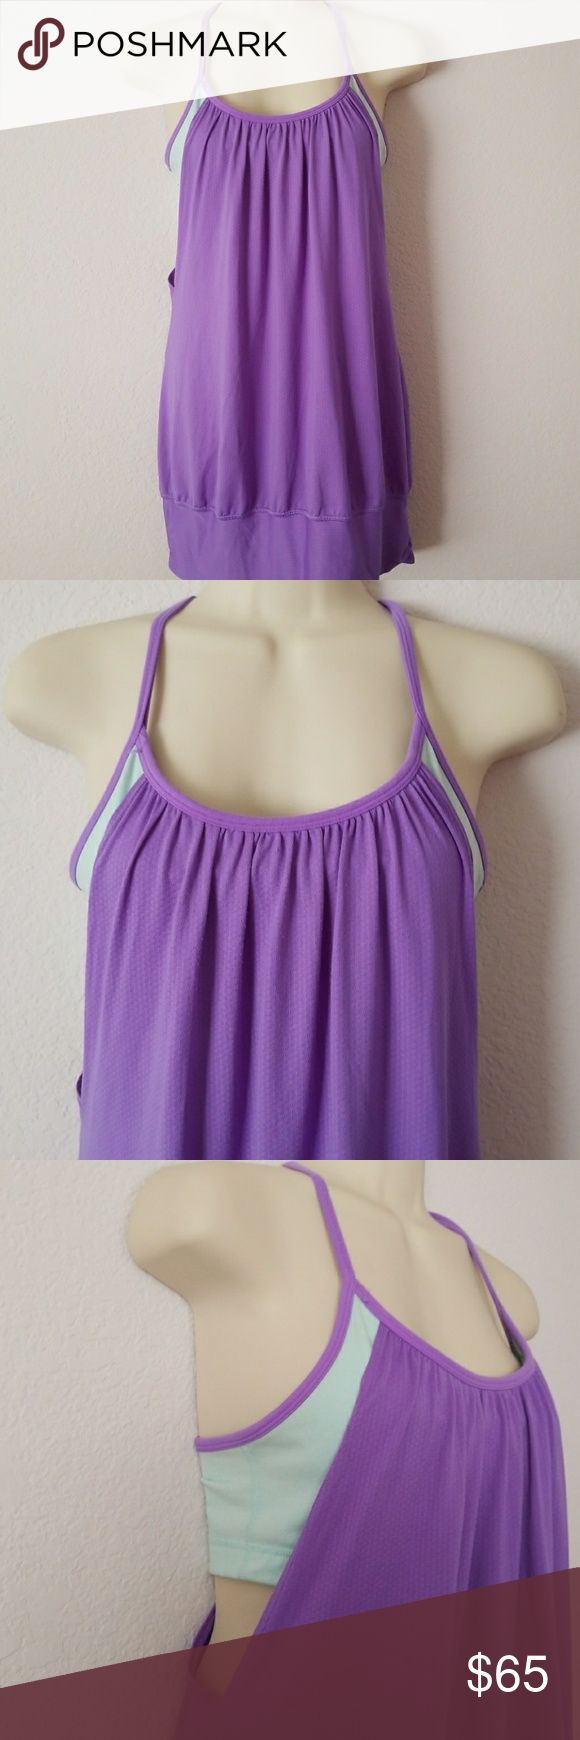 LULULEMON PURPLE TANKINI Loose Fitting Tankini in purple with contrasting aqua padding. In EUC.  Great for tennis or a jog in the park.  Size  6. Padding not included.    1 lululemon athletica Tops Tank Tops